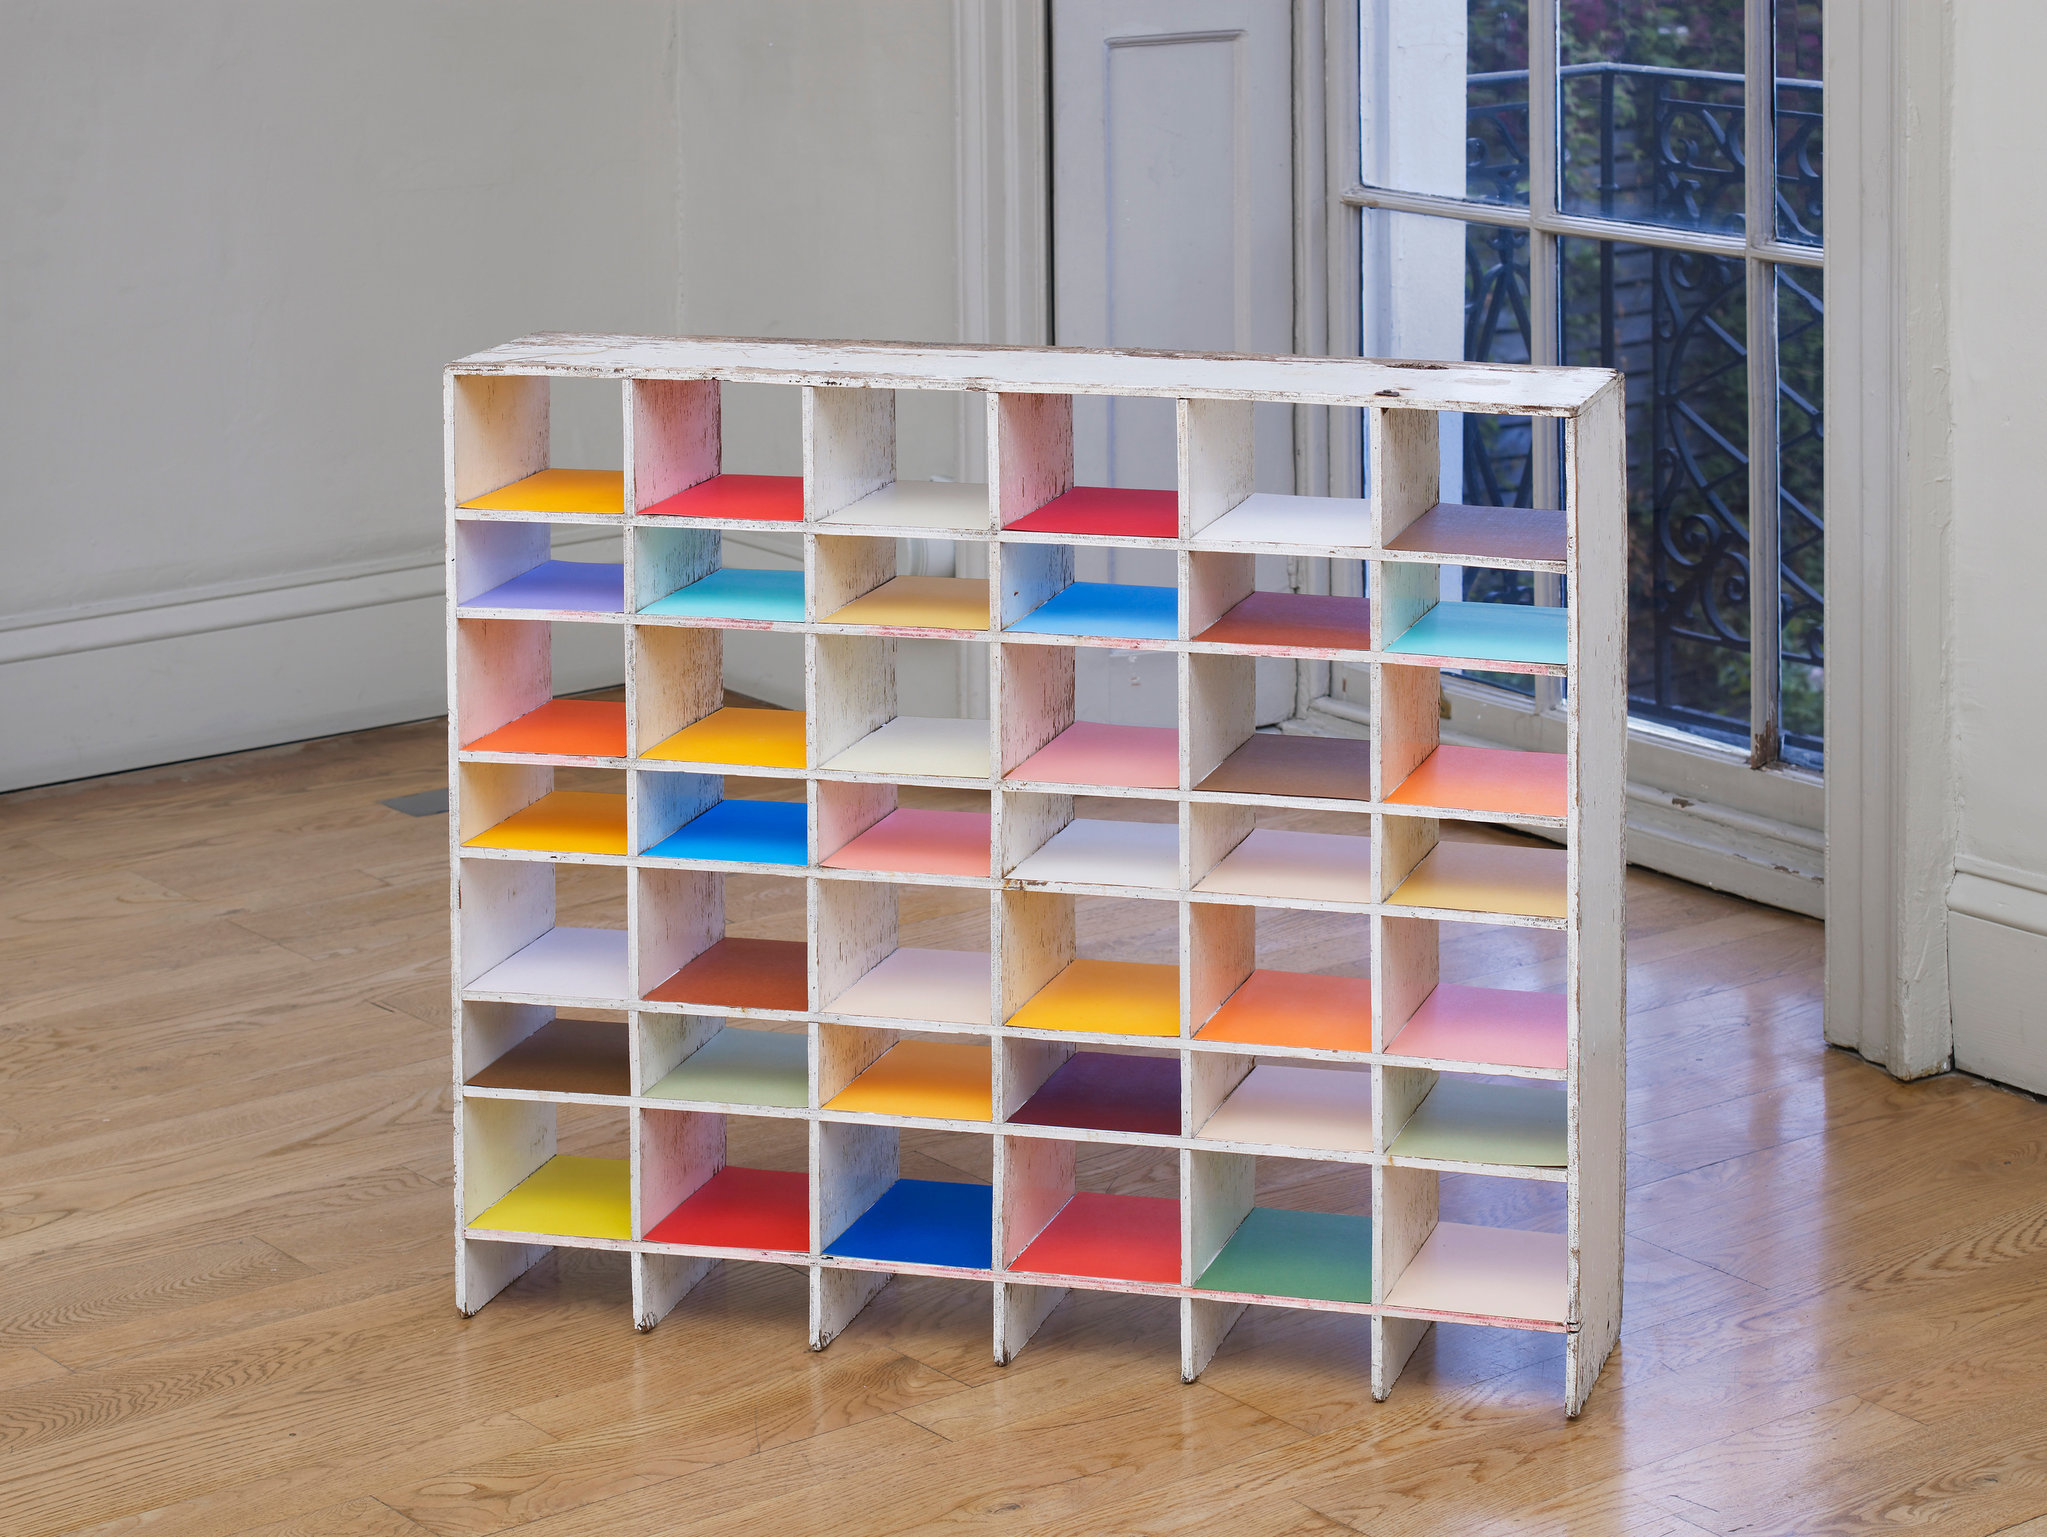 nicky-hirst-real-size-domobaal-25.jpg